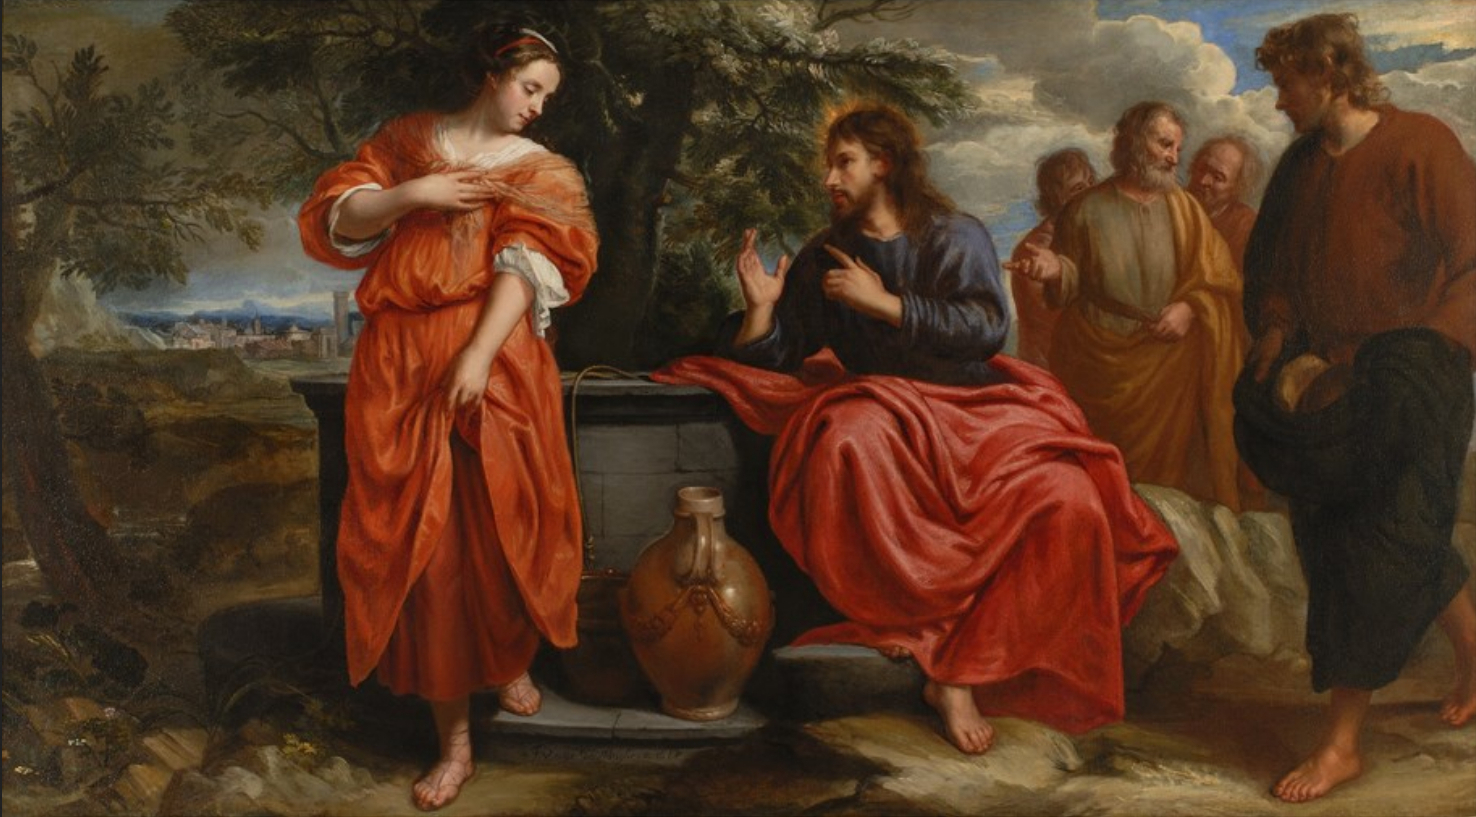 http://upload.wikimedia.org/wikipedia/commons/8/8c/Jacob_van_Oost_%28II%29_-_Christ_and_the_Samaritan_Woman_at_the_Well.jpg